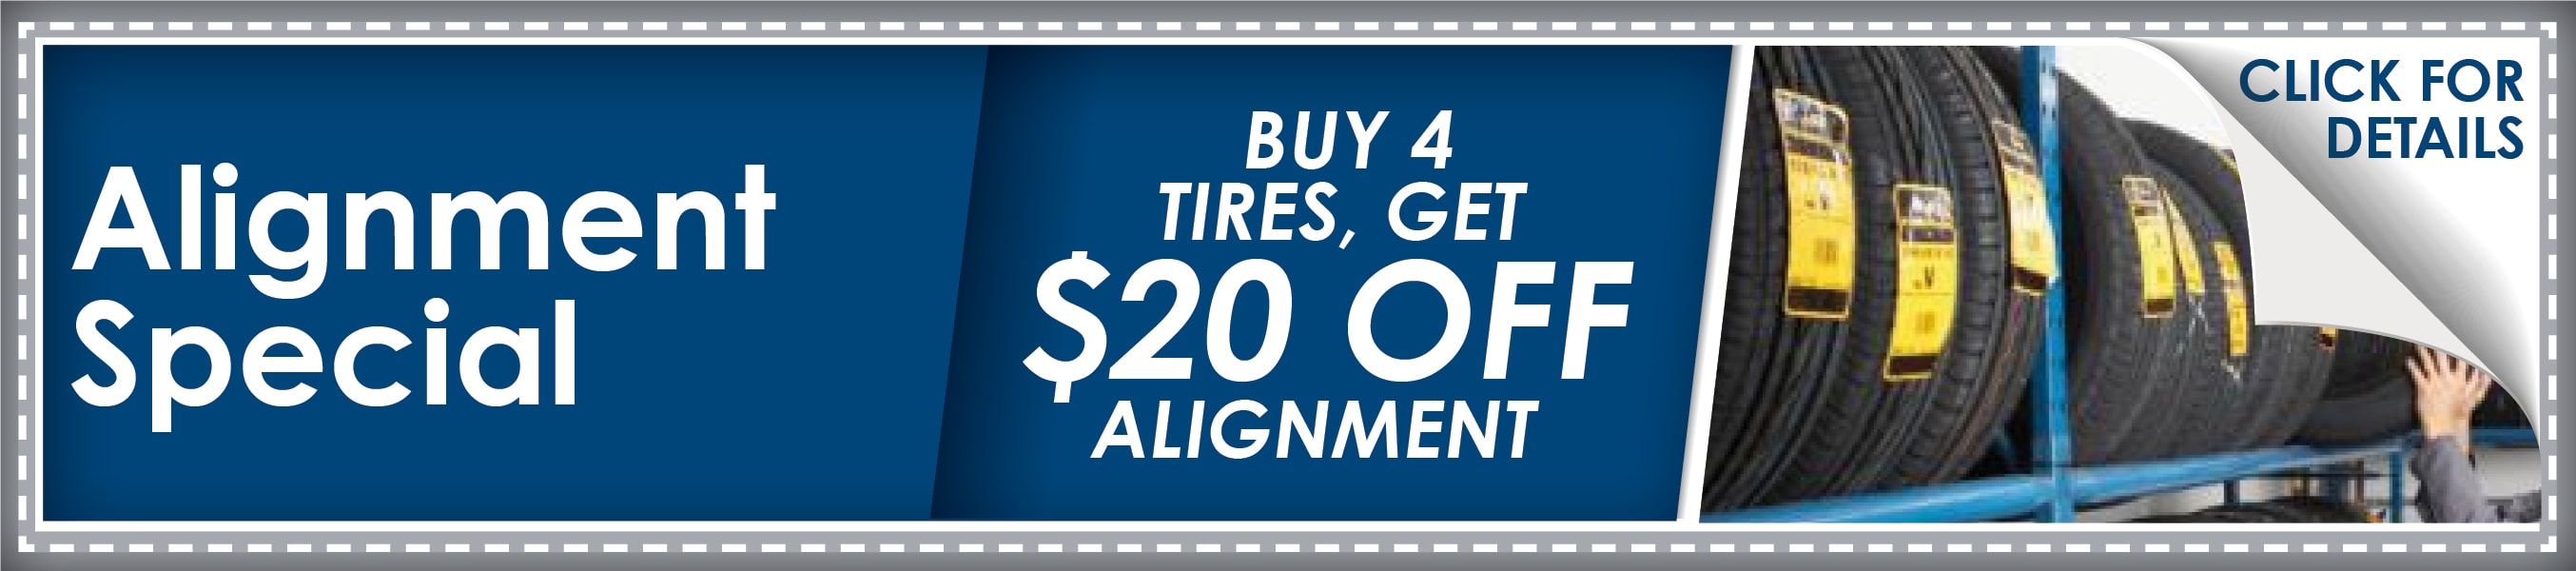 Hyundai Tire Event Coupon, Phoenix